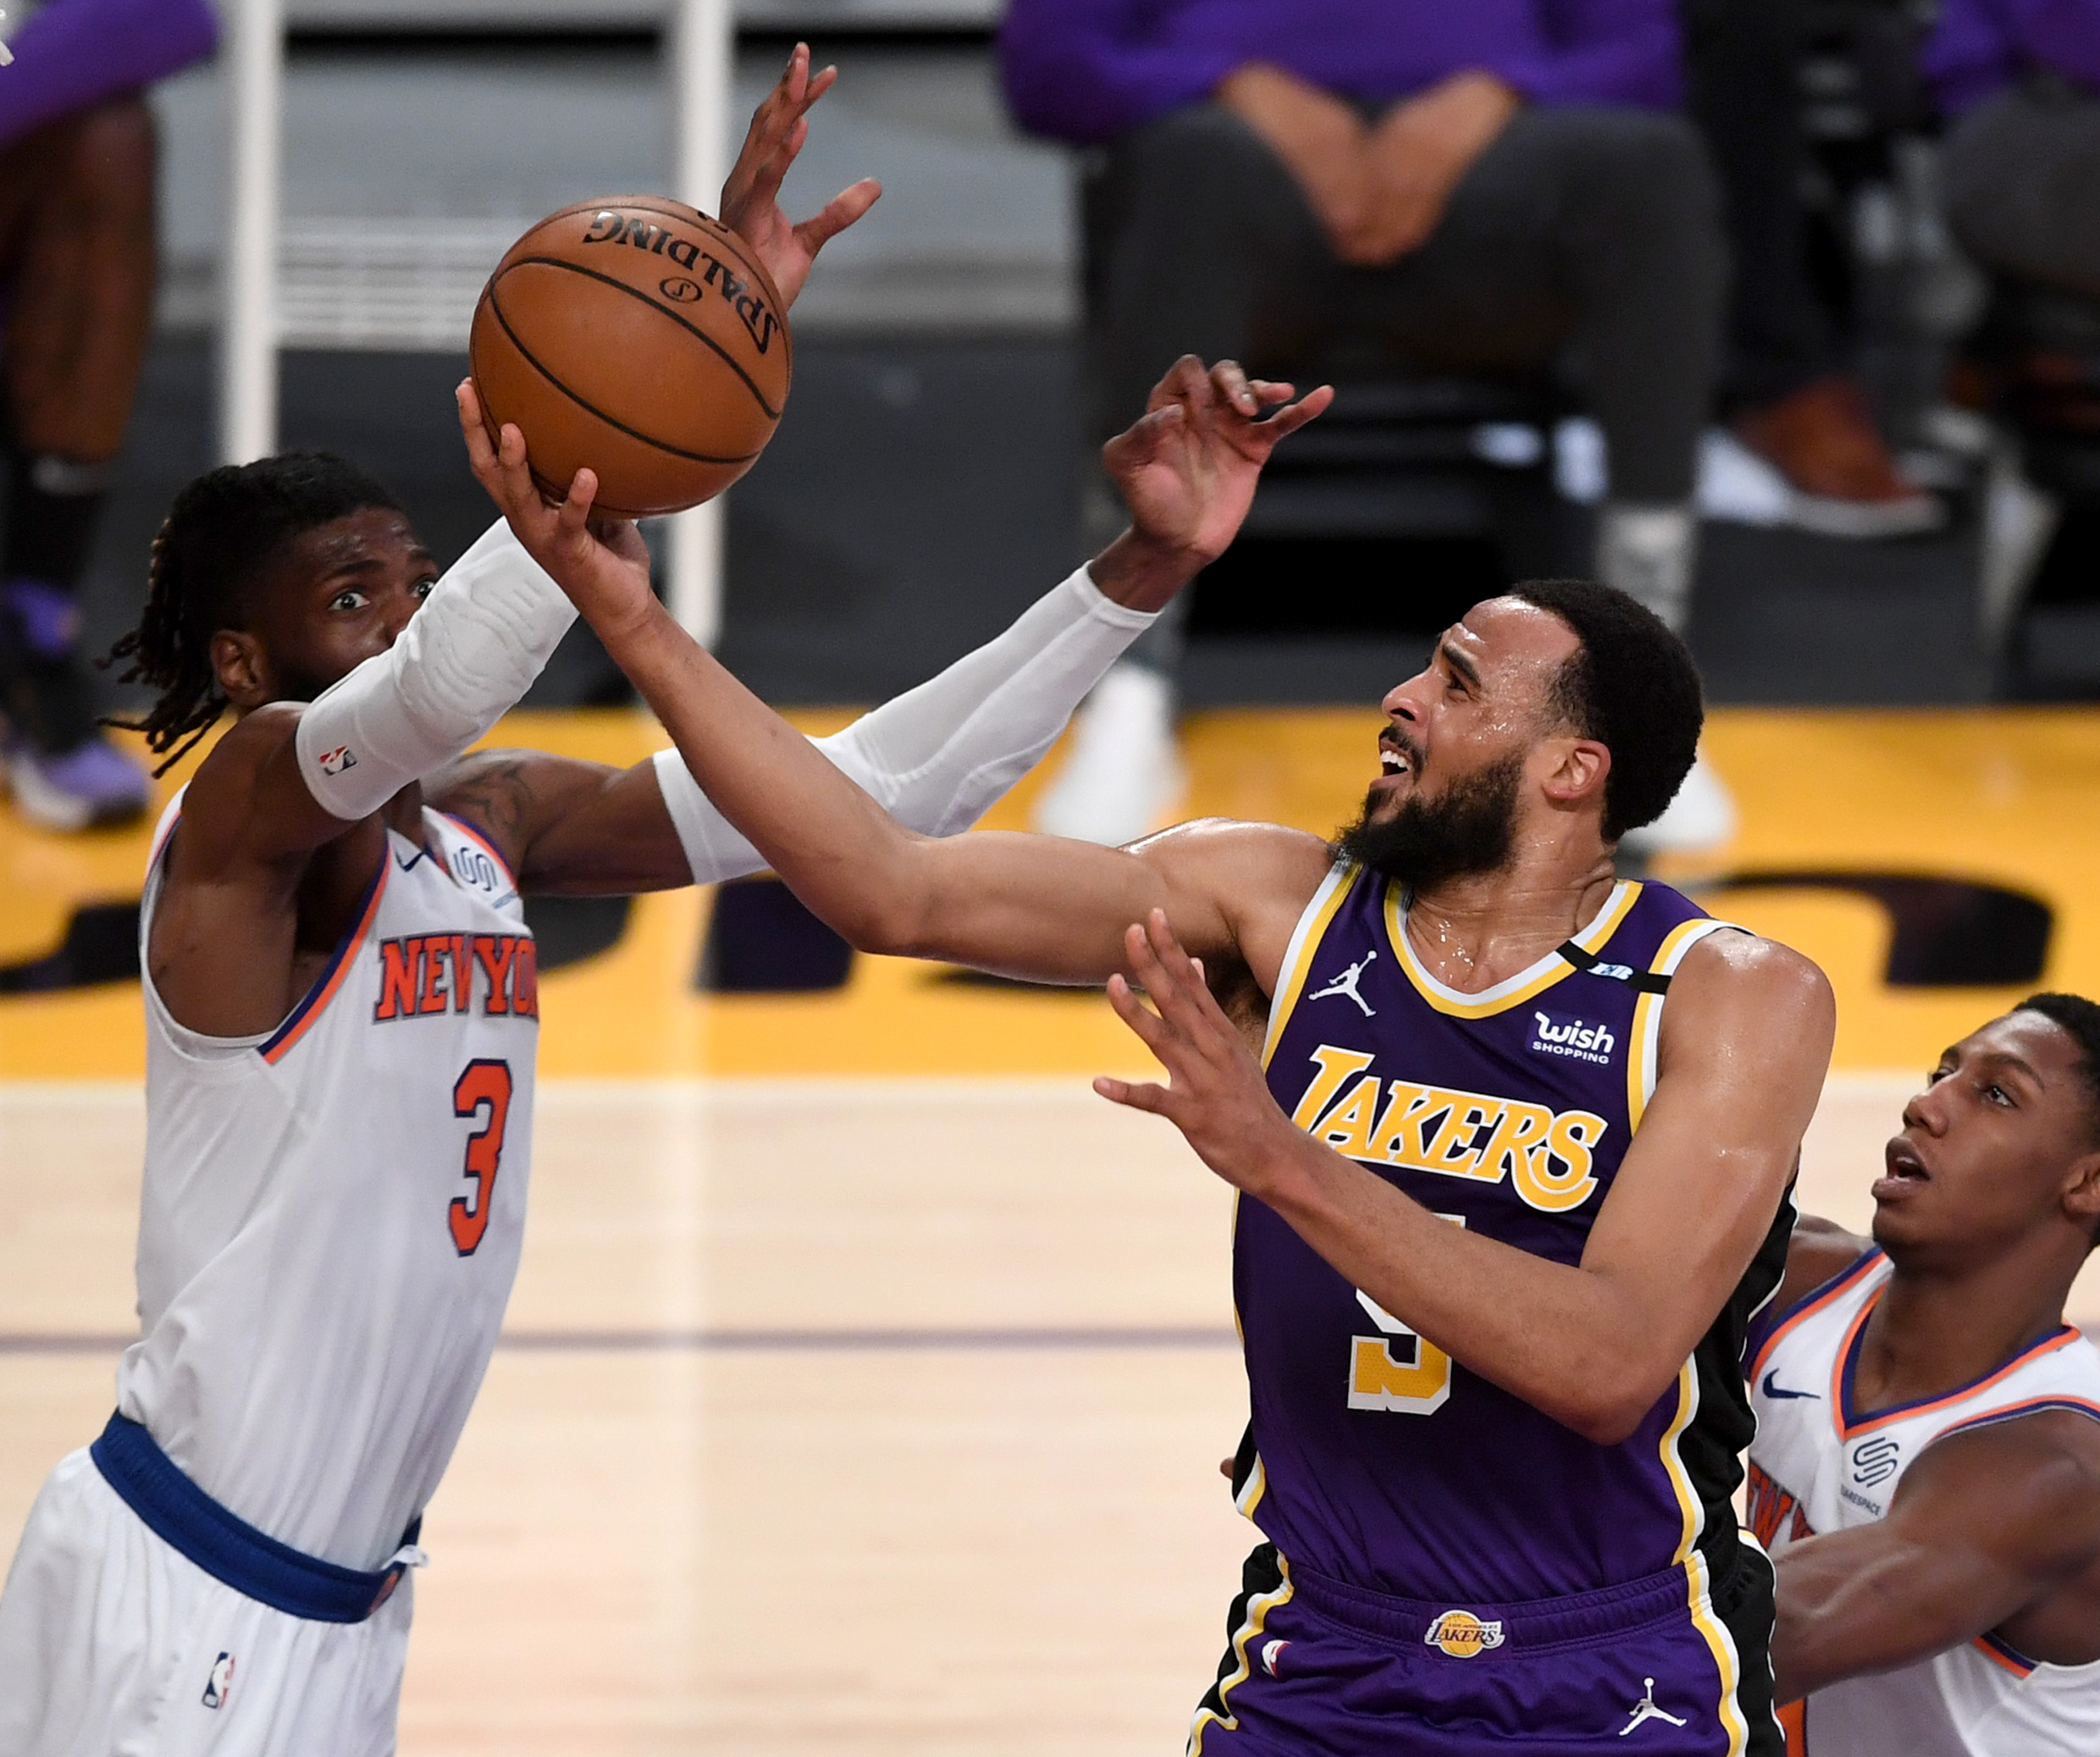 May 11, 2021; Los Angeles, California, USA;    Los Angeles Lakers guard Talen Horton-Tucker (5) is defended by New York Knicks center Nerlens Noel (3) as he goes up for a basket in the first half of the game at Staples Center. Mandatory Credit: Jayne Kamin-Oncea-USA TODAY Sports